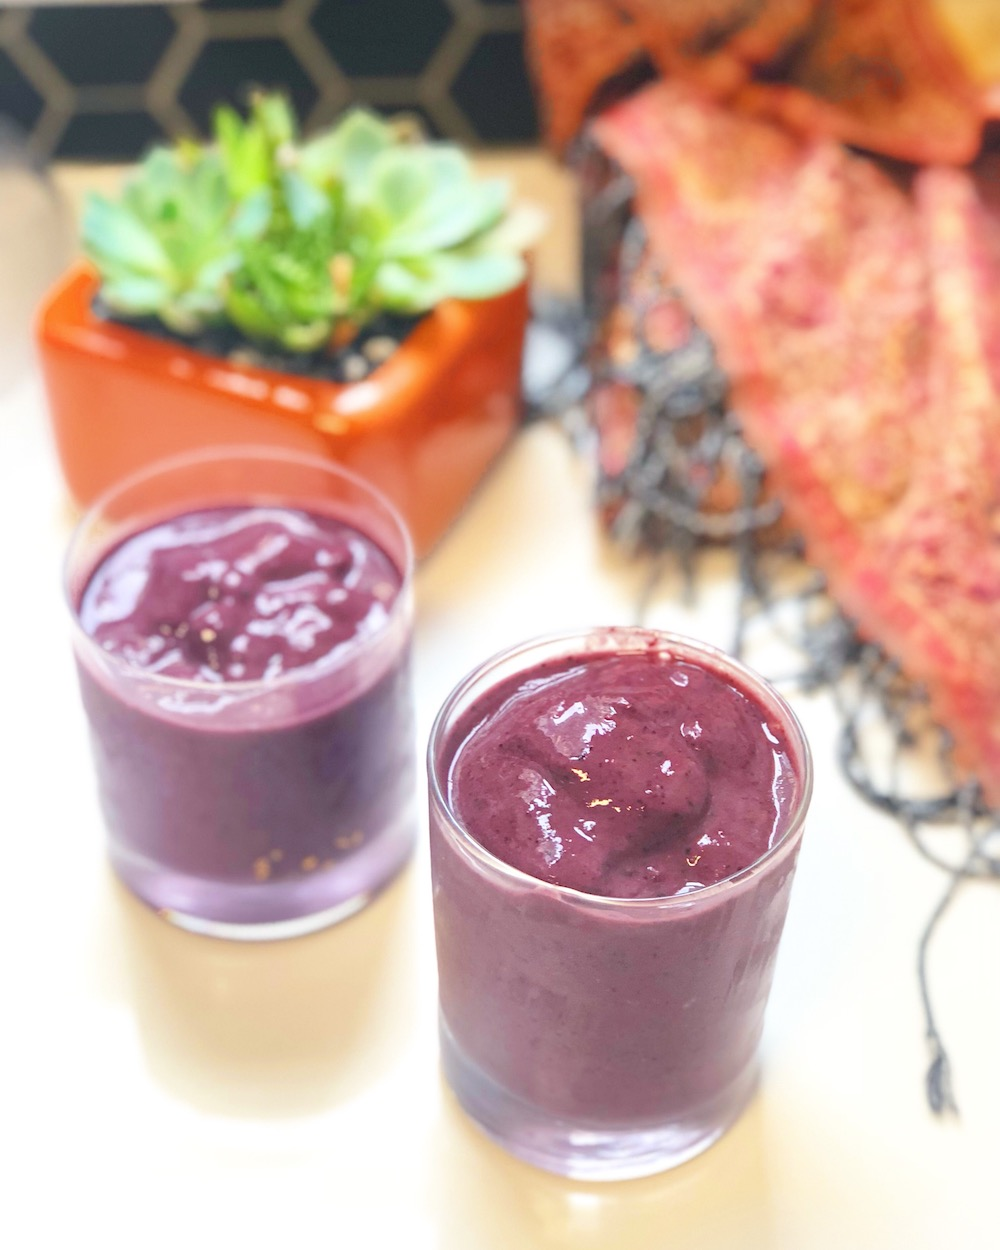 Blackberry Good Mood smoothie